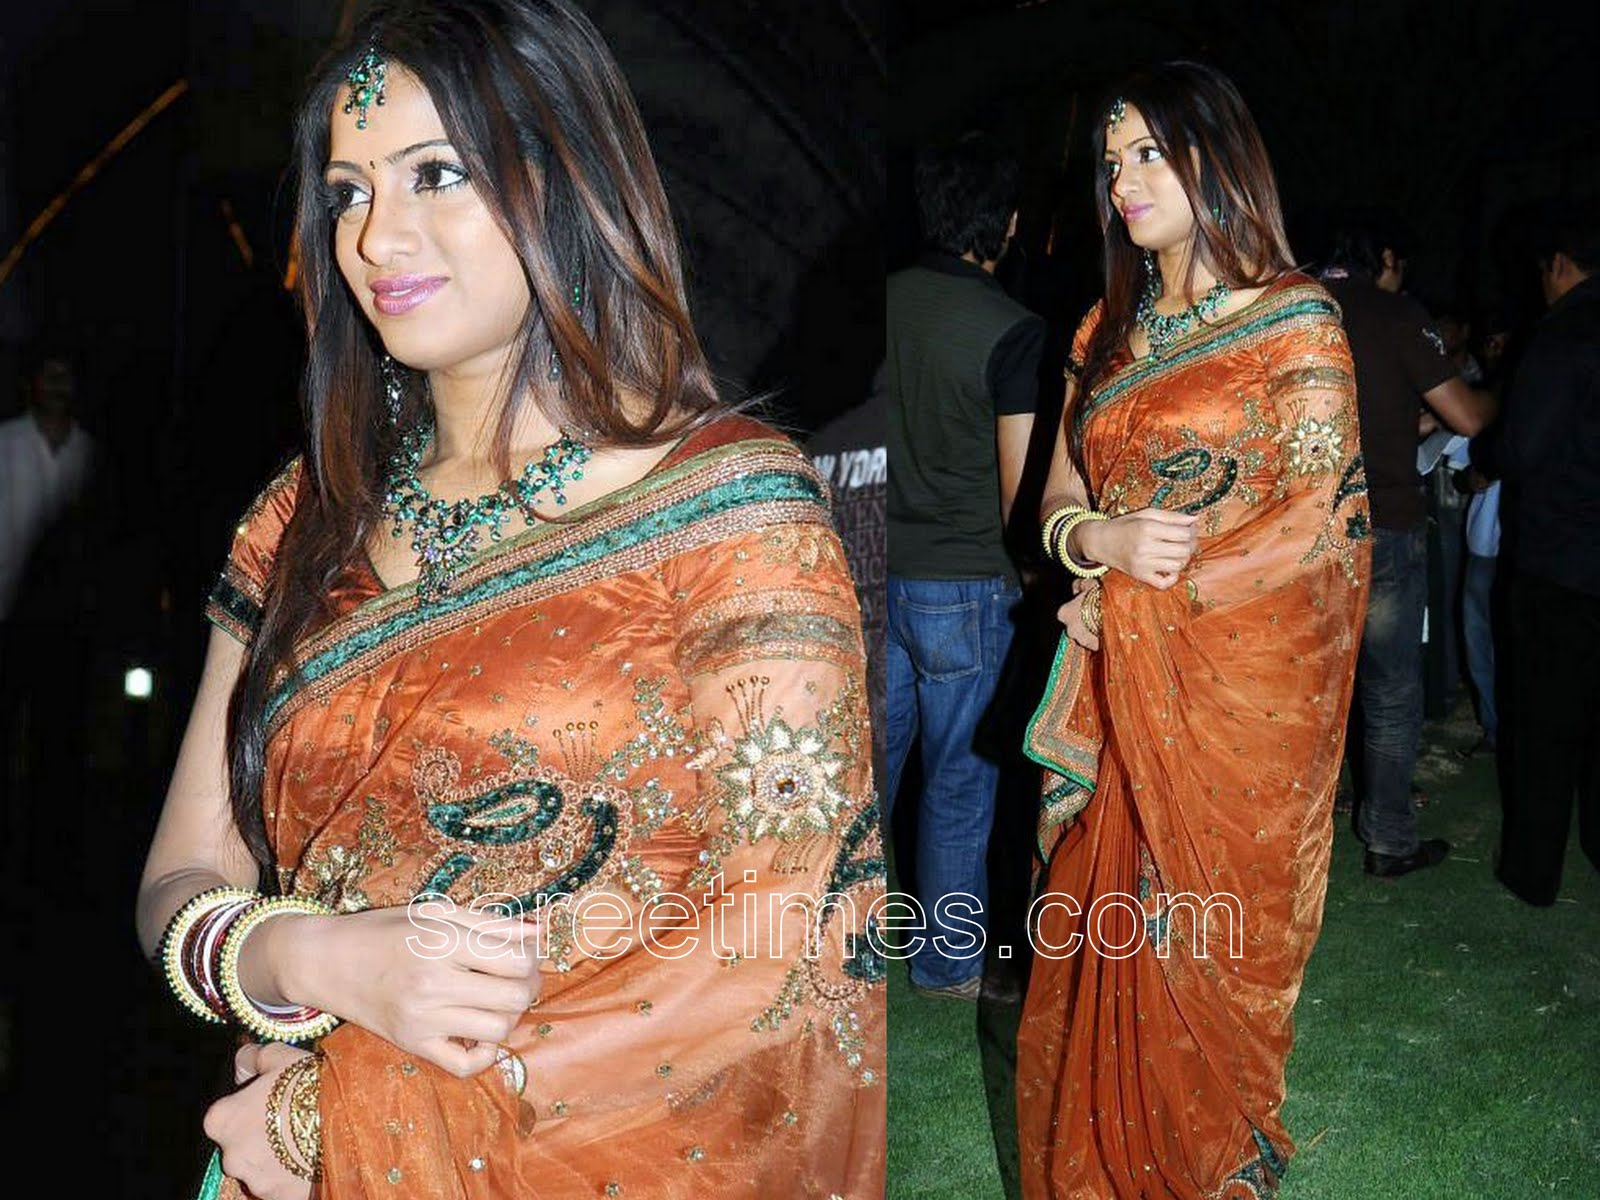 uday bhanu in embroidery saree | sareetimes.com-daily dose of latest ...